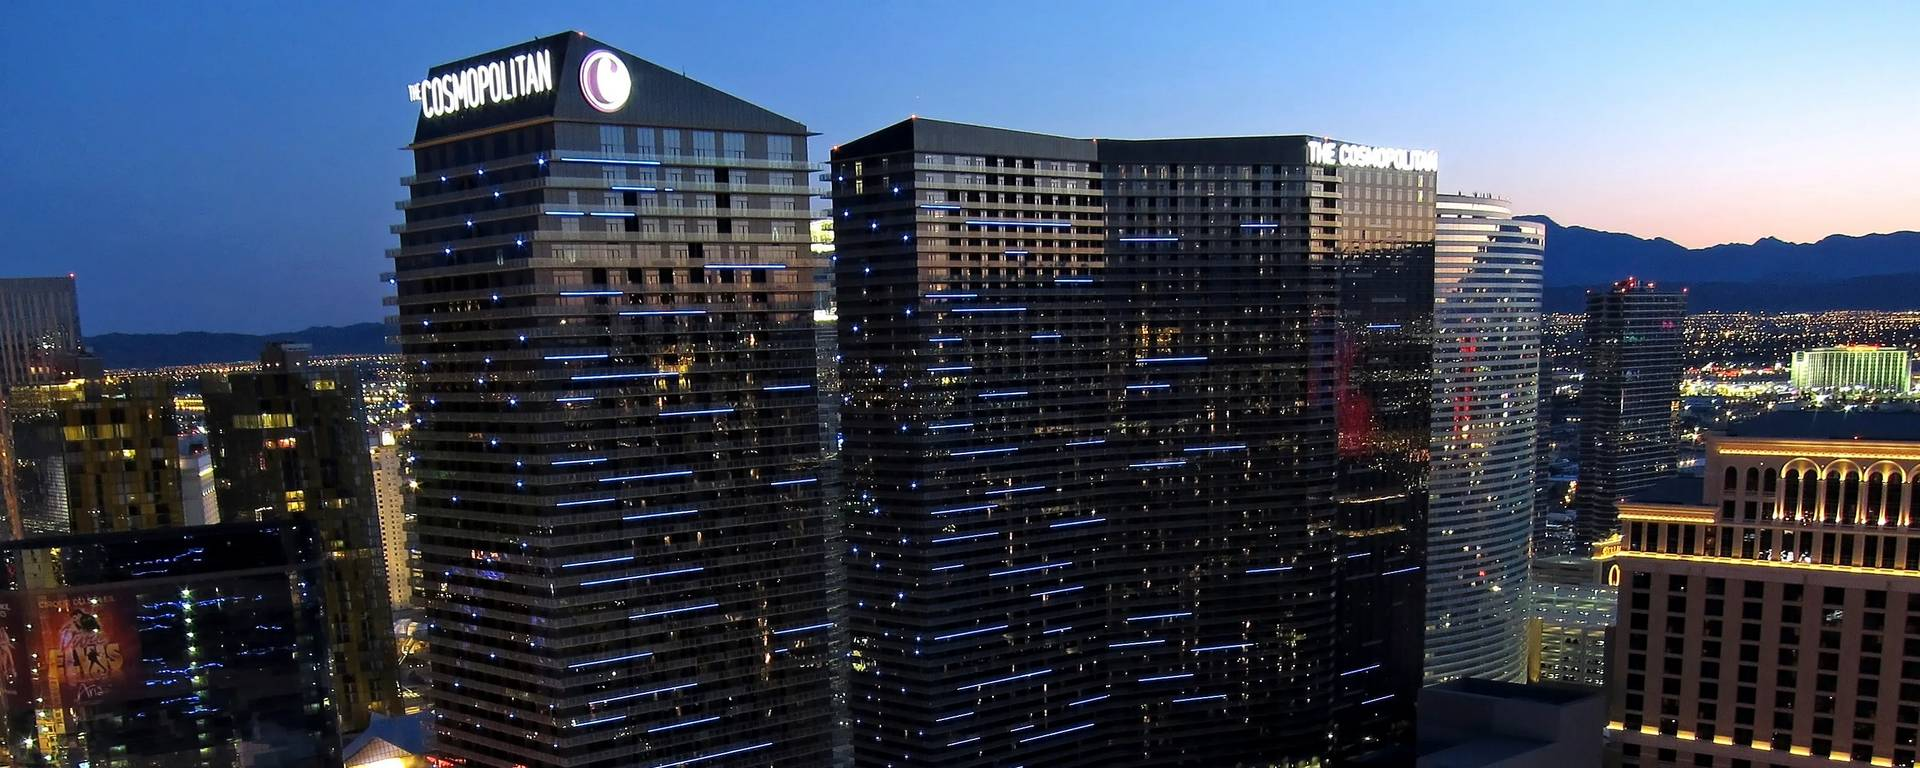 The Cosmopolitan Hotel Las Vegas Deals & Promo Codes